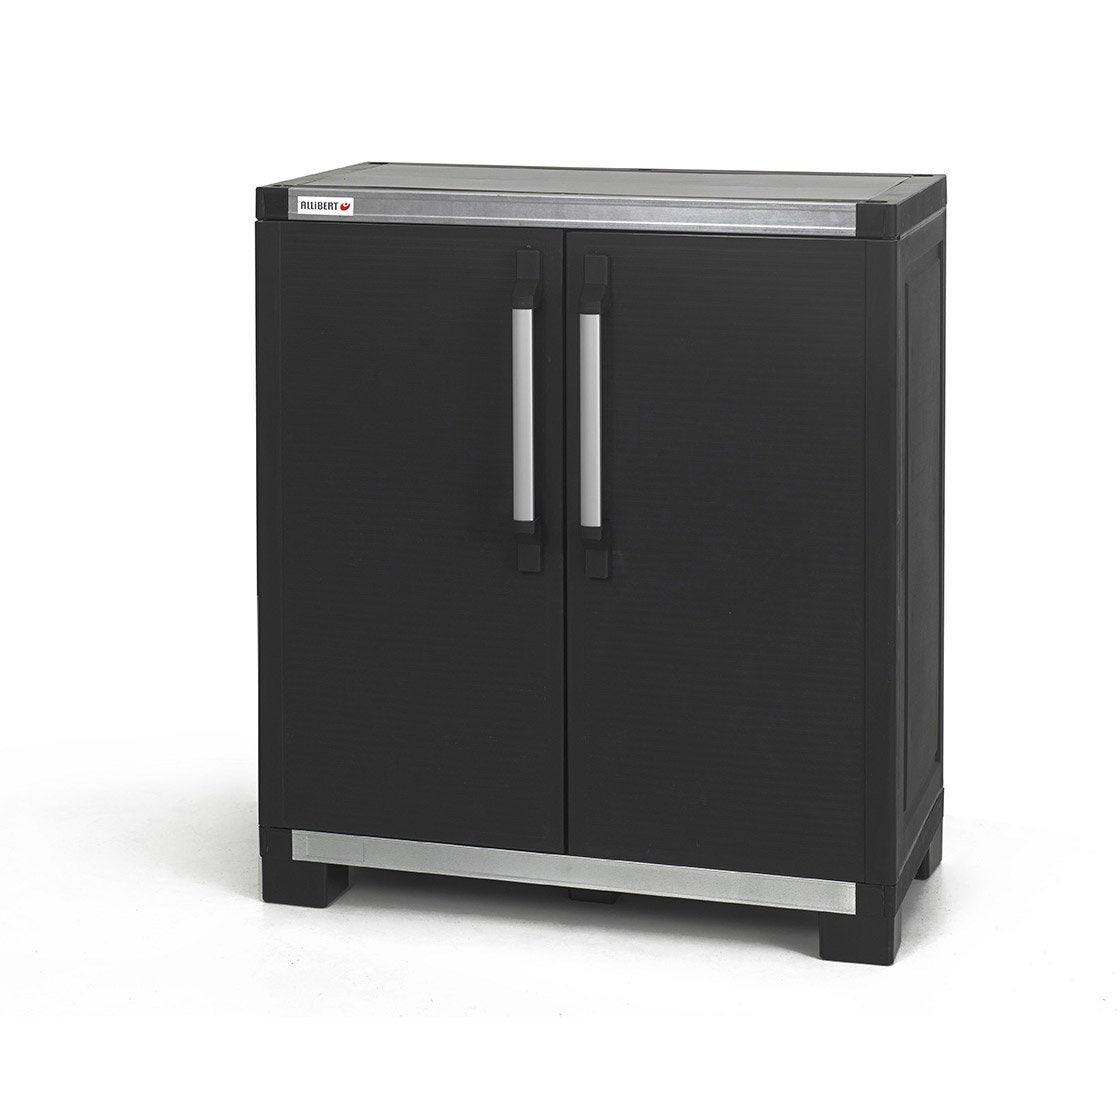 armoire basse r sine 1 tablette allibert xl pro x x cm leroy merlin. Black Bedroom Furniture Sets. Home Design Ideas